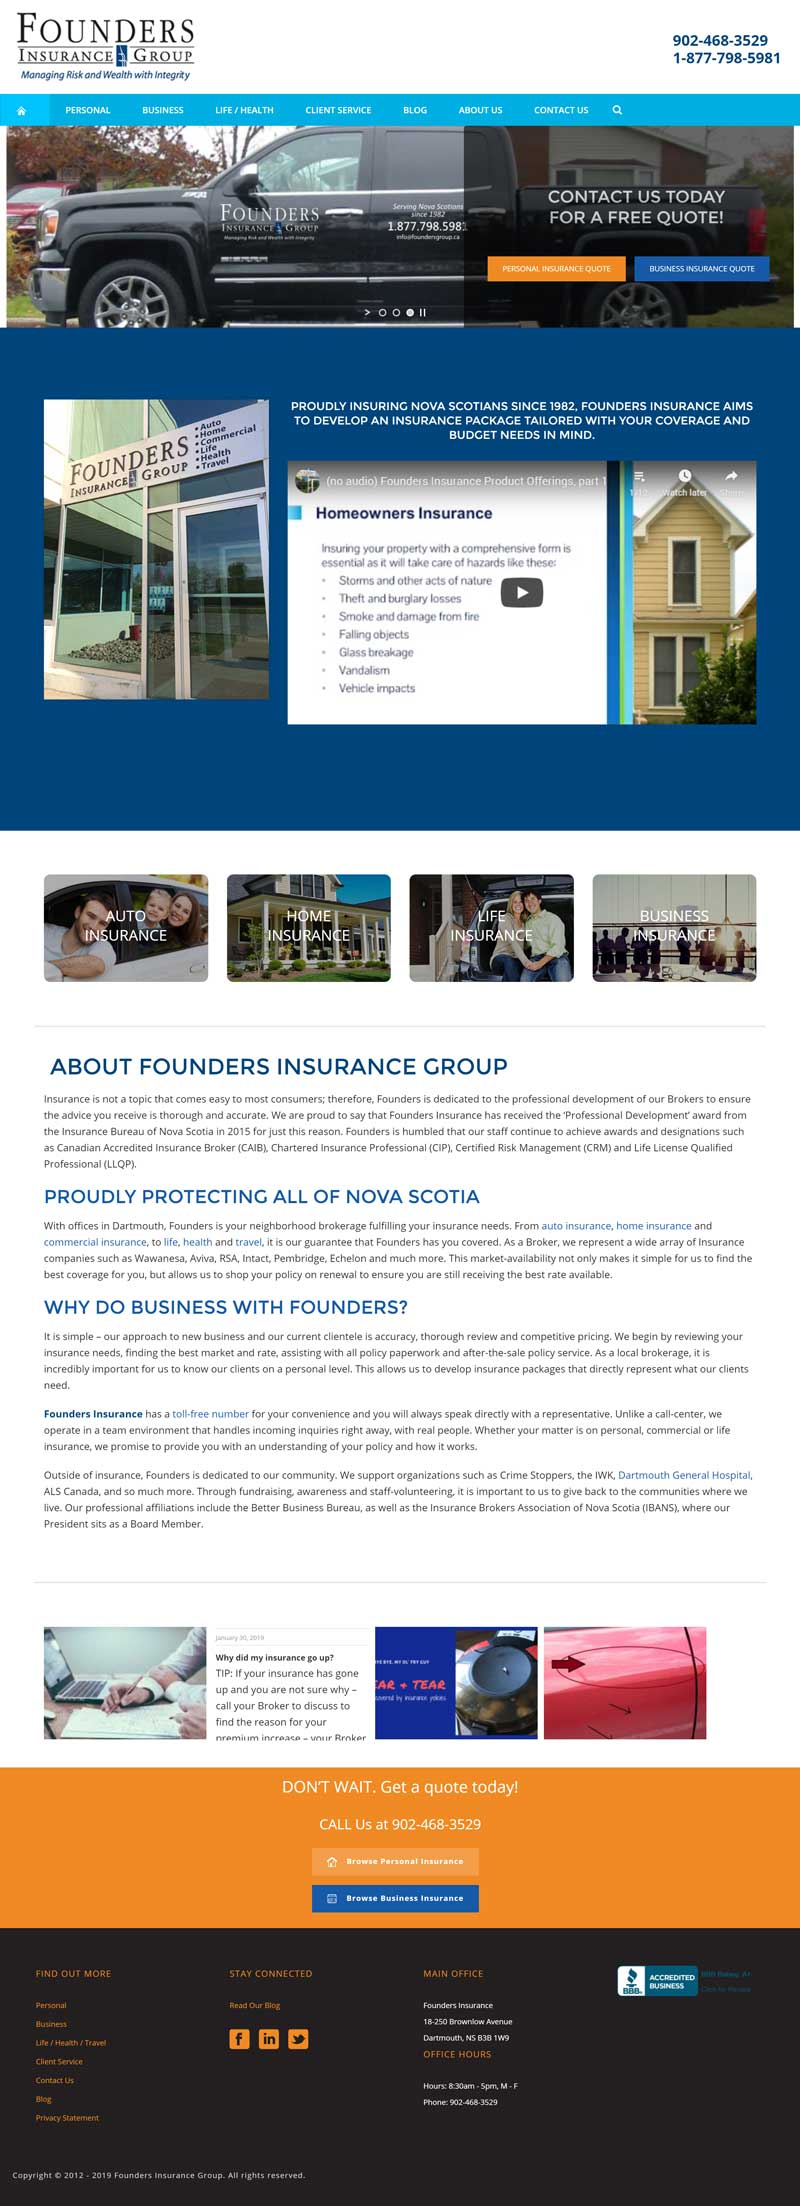 Founders Insurance Group